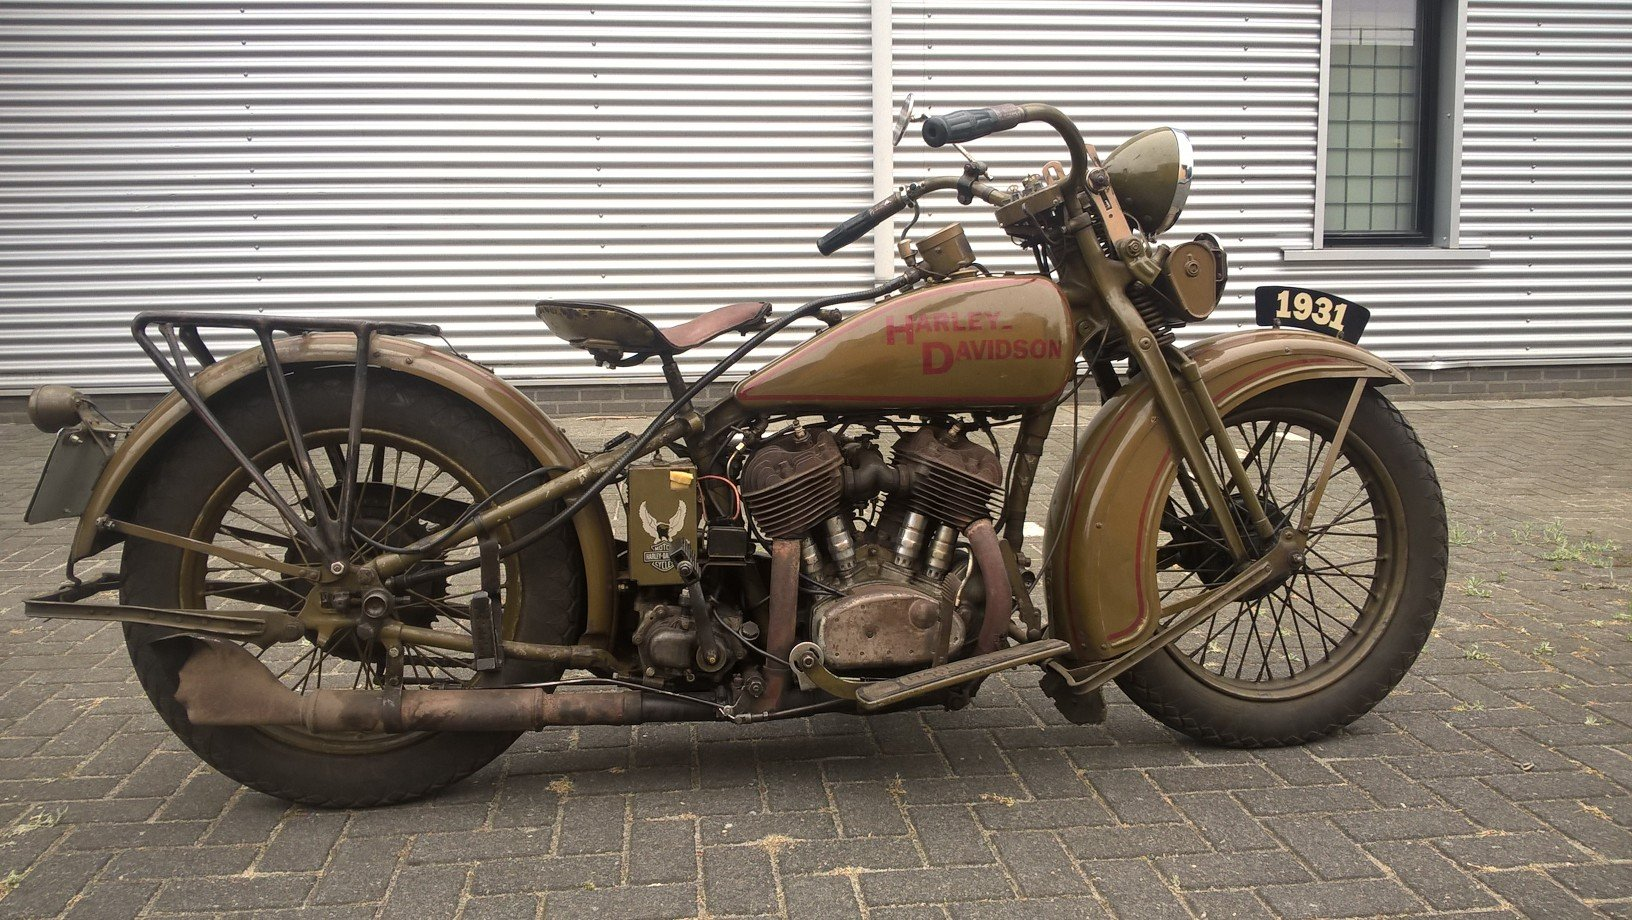 Harley davidson sidecar combination VL 1200 1932 SOLD (picture 1 of 6)